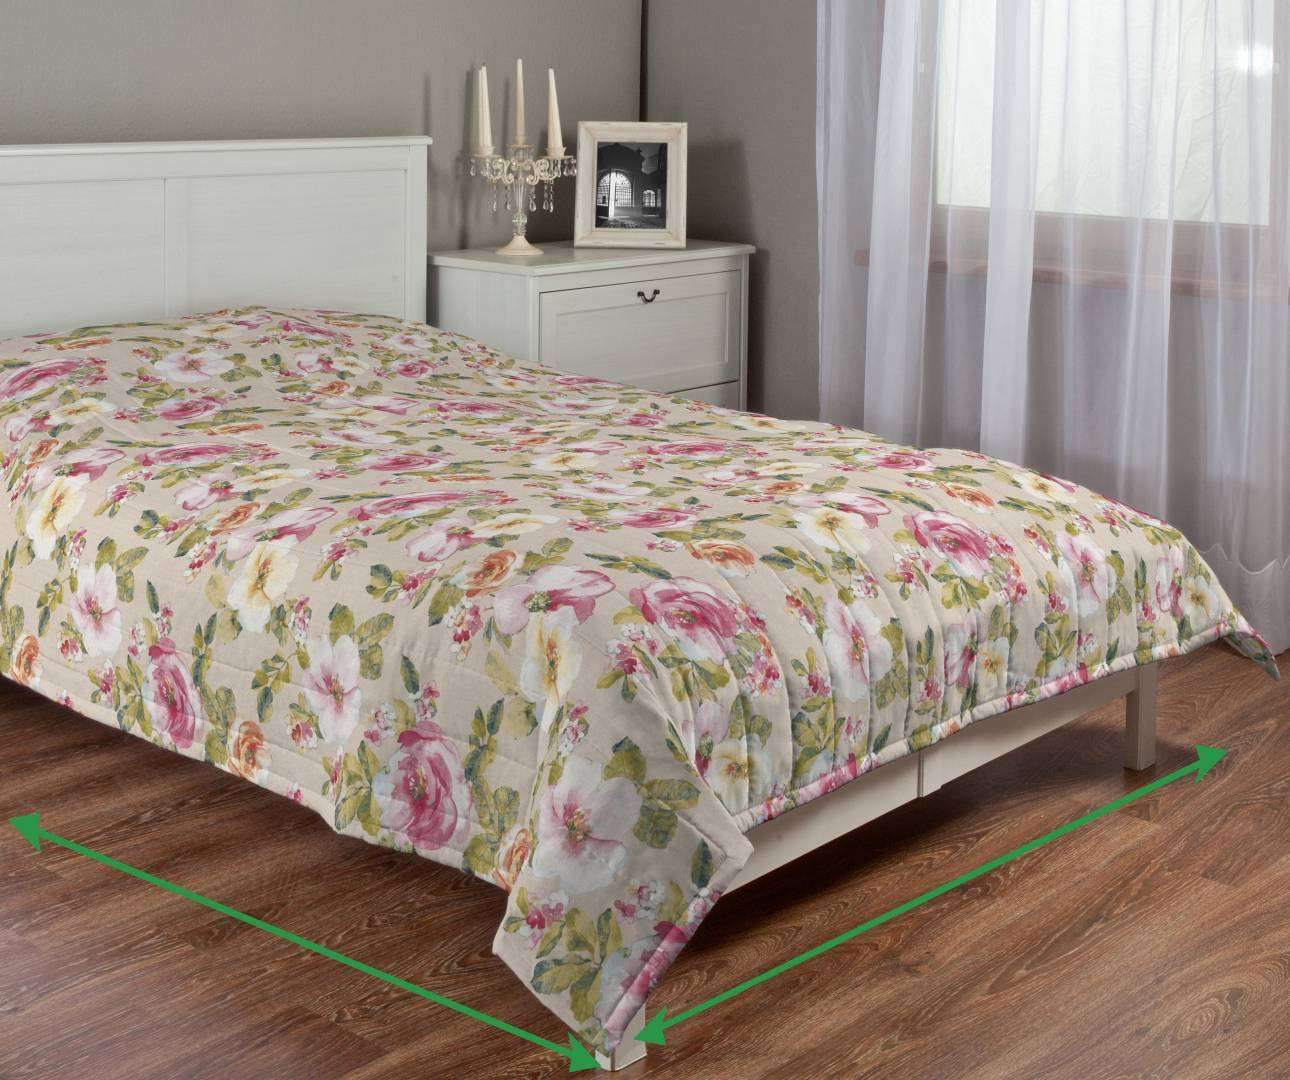 Quilted throw (vertical quilt pattern) in collection Londres, fabric: 140-43